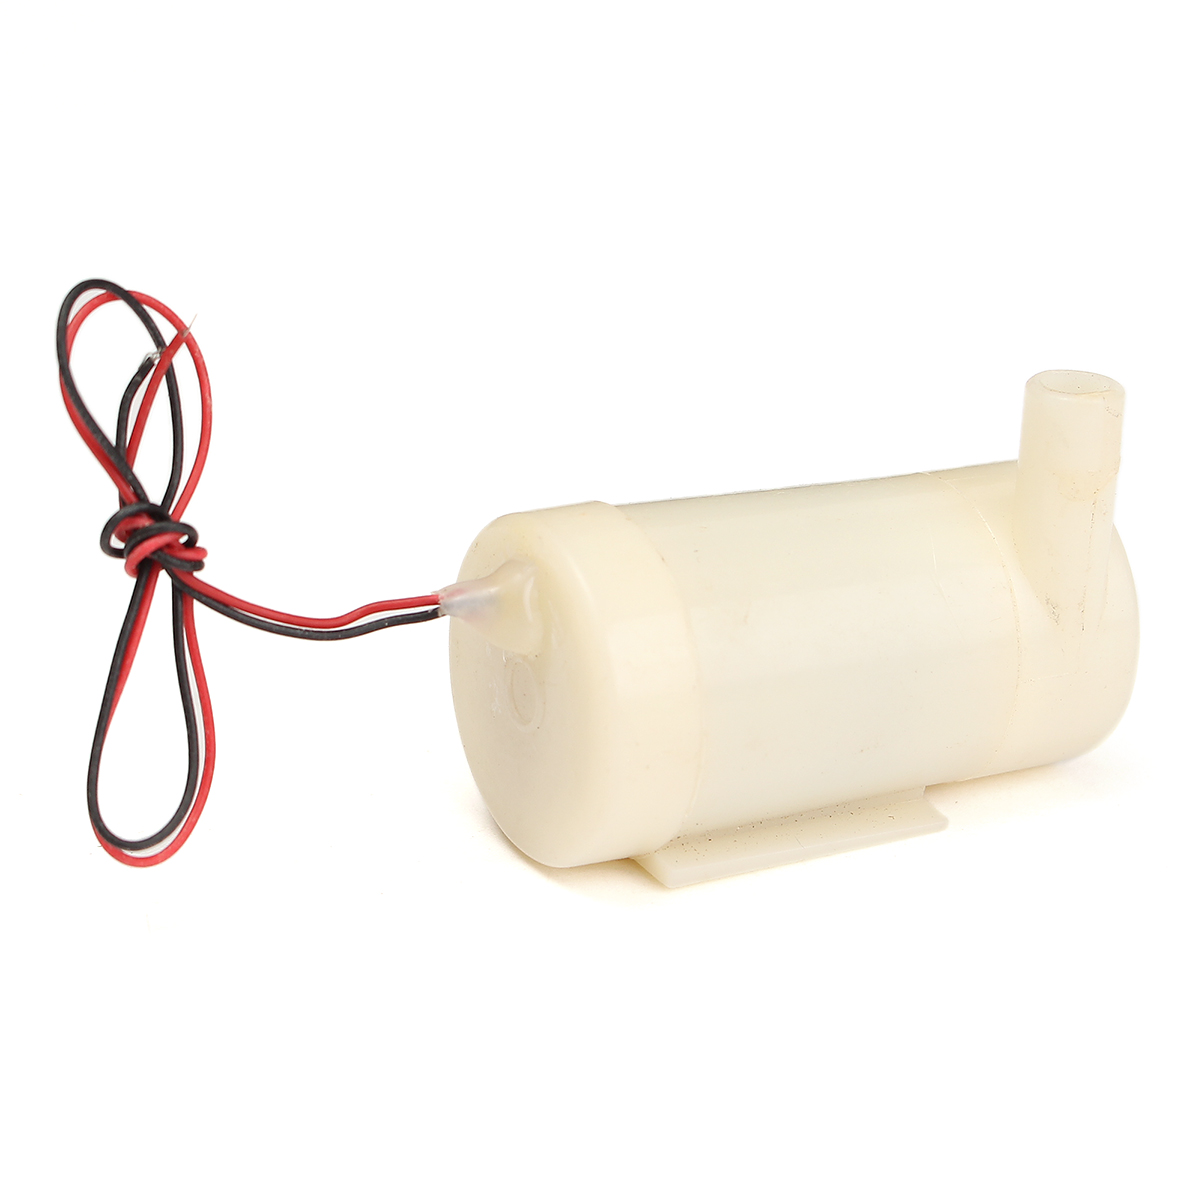 Dc v l h low mini submersible motor pump new water